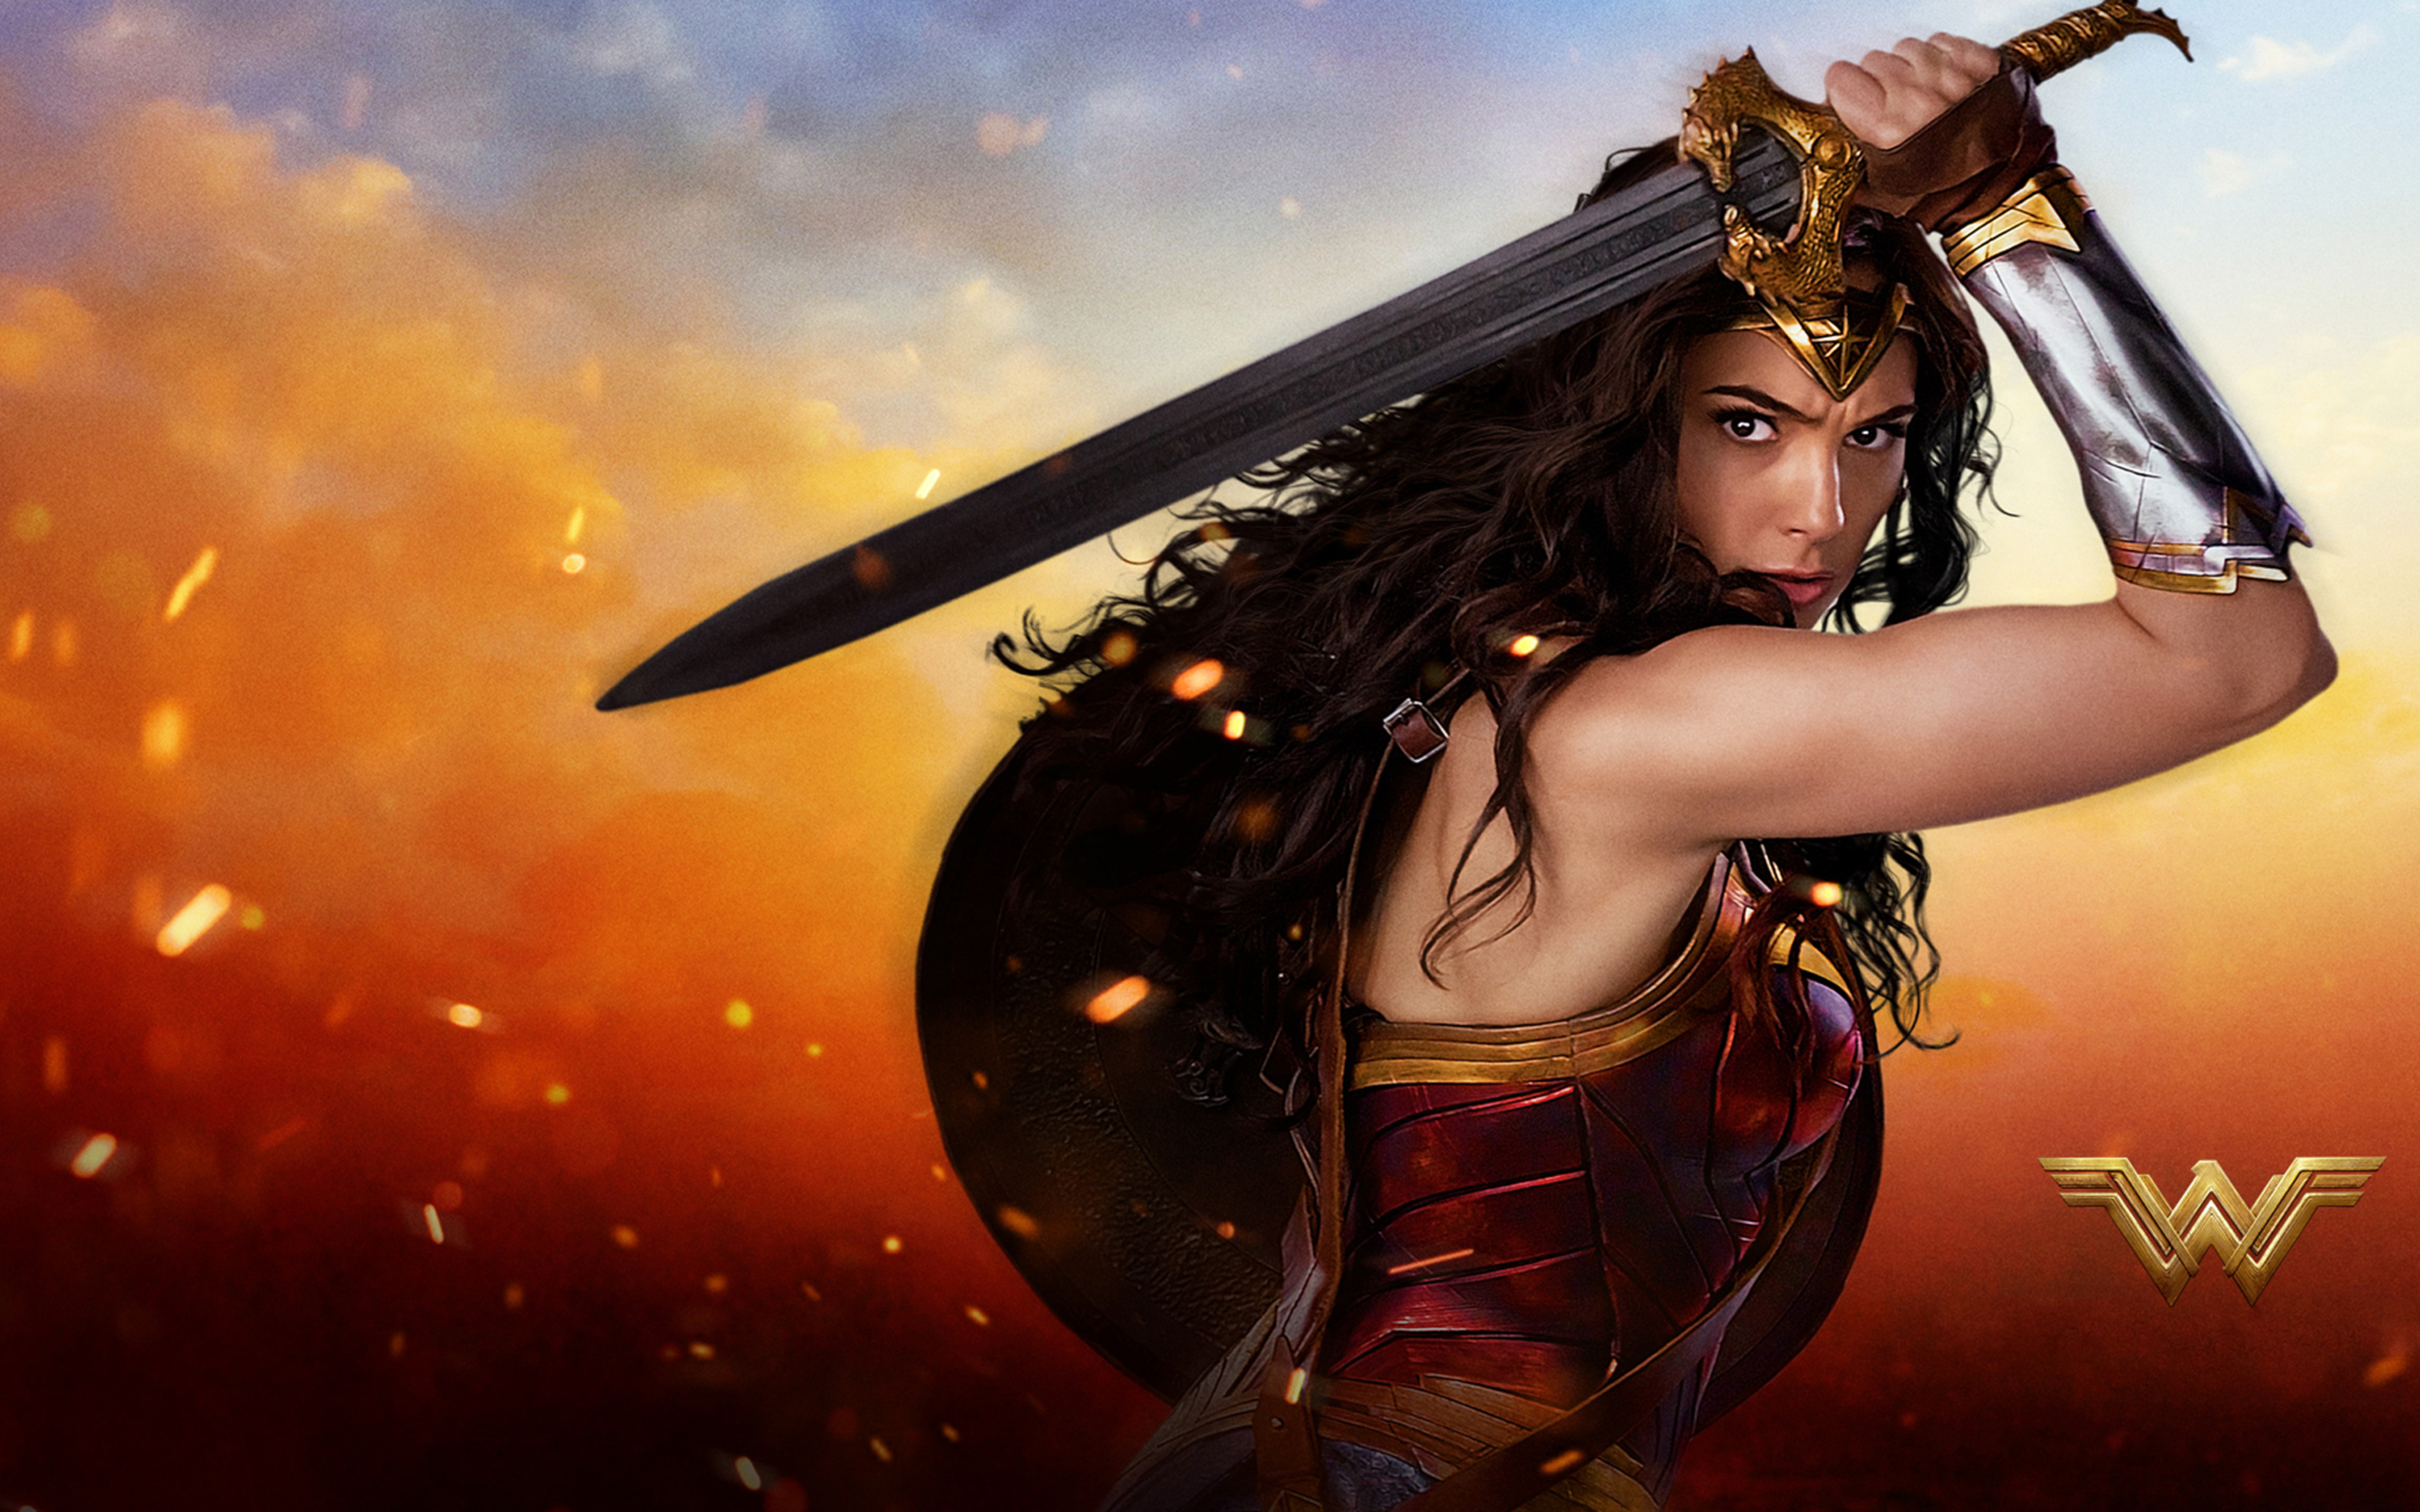 2017 Wonder Woman 4k Hd Movies 4k Wallpapers Images: 3840x2400 2017 Wonder Woman HD 4k HD 4k Wallpapers, Images